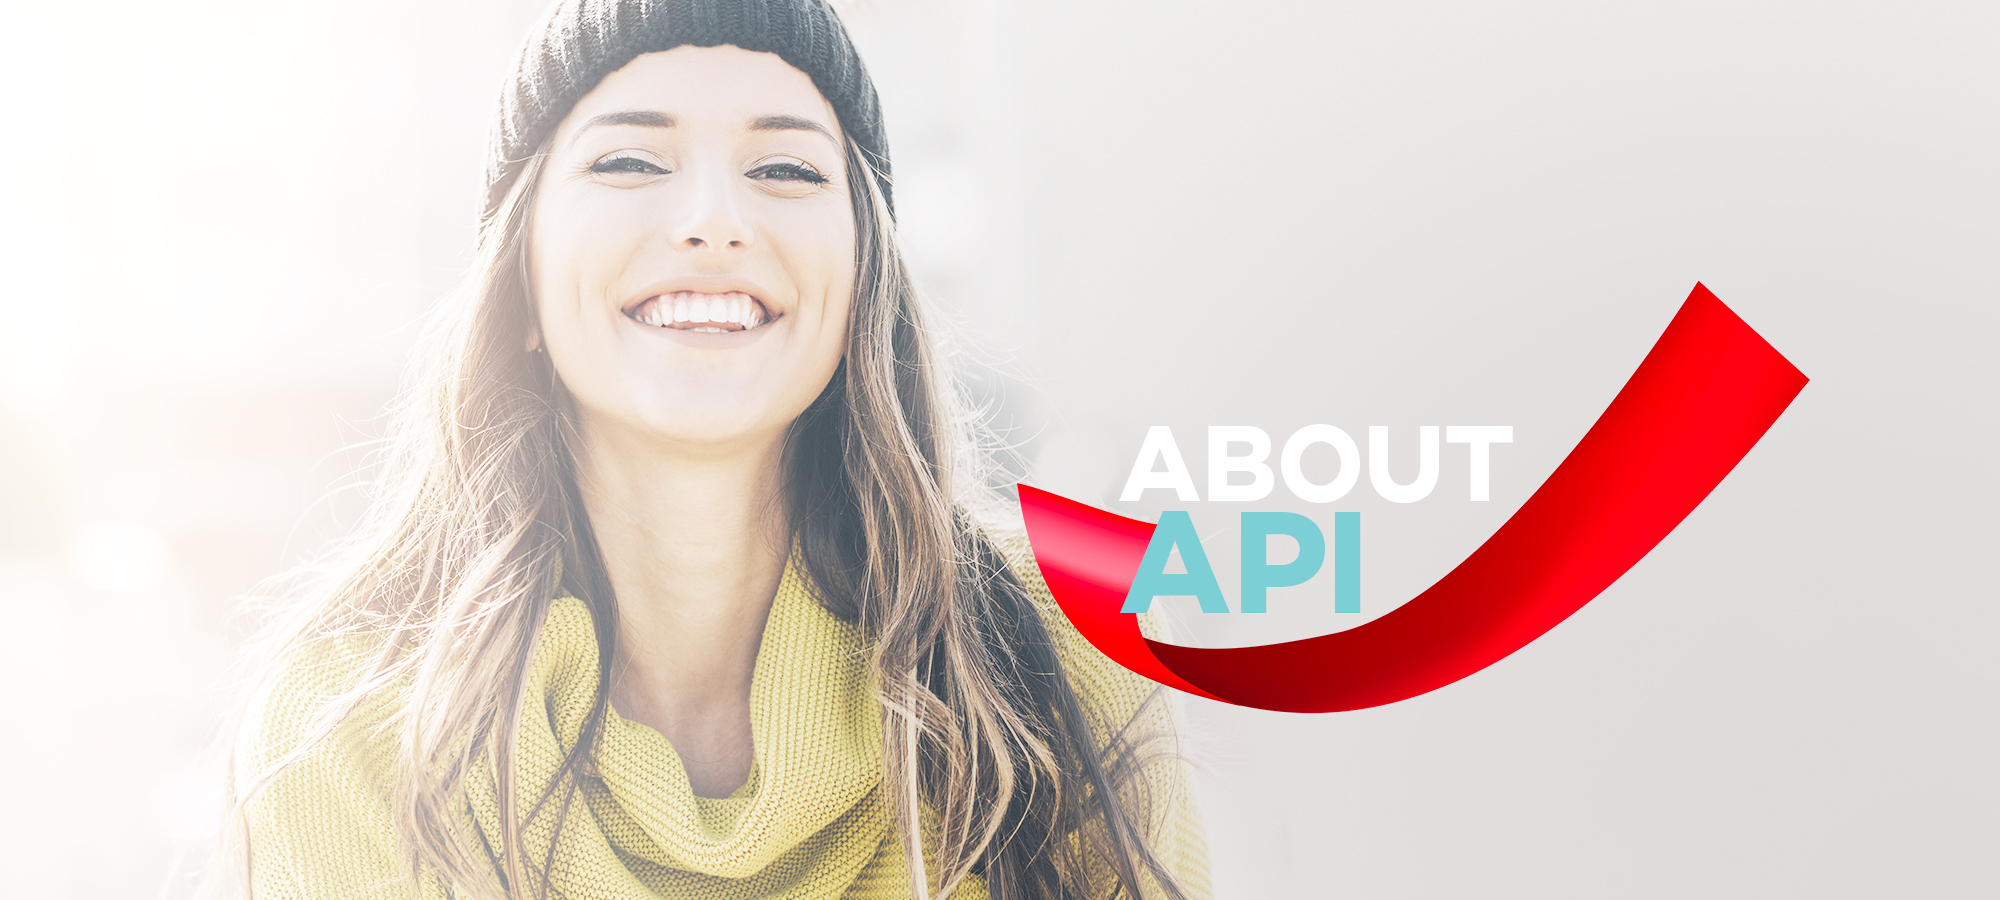 About API